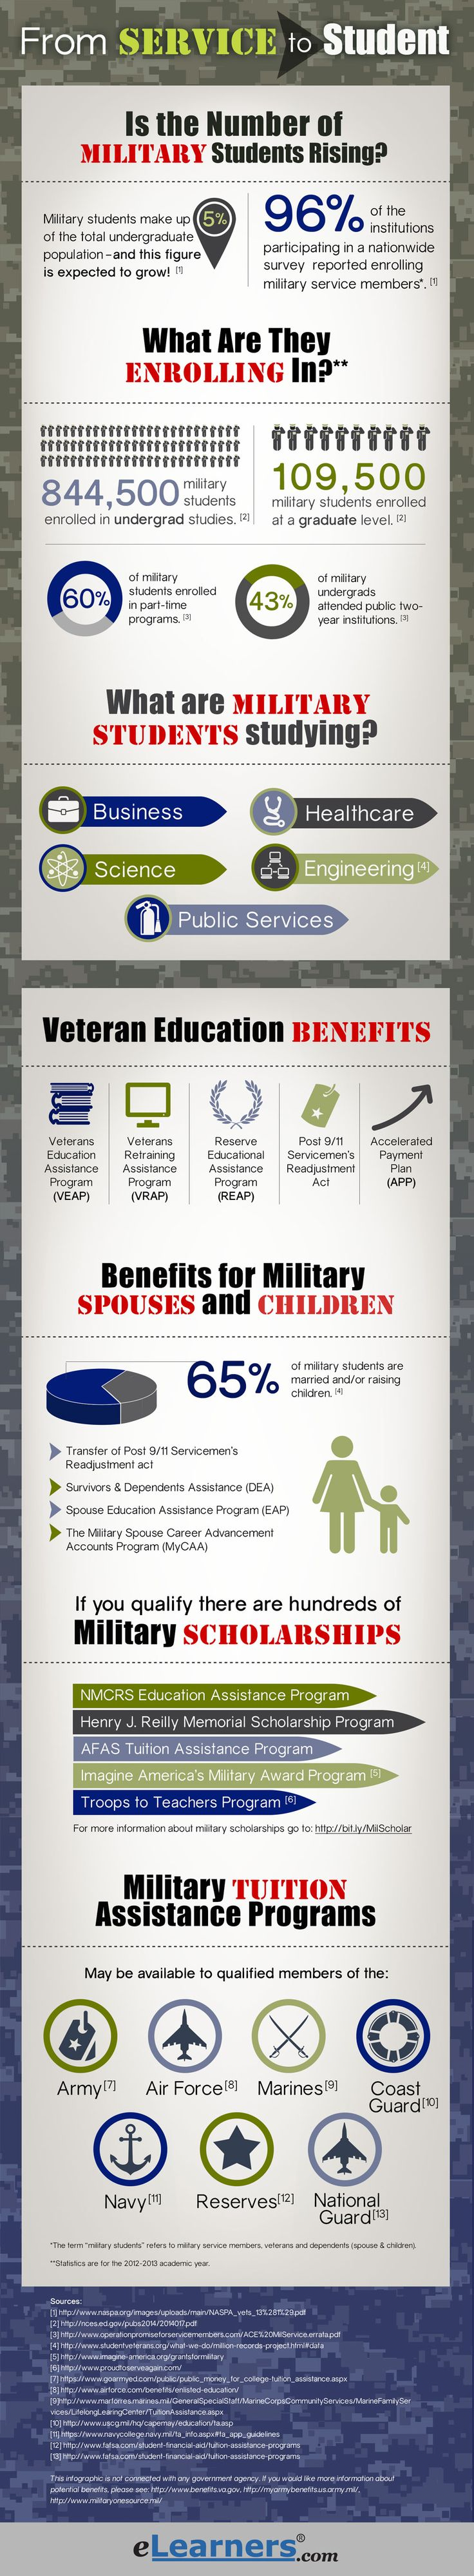 Getting an education is a top priority for many service members, veterans, and military spouses, and it should be! It is important to achieve your career goals, and E-Learners has just the resources to show you how important it is and how to get started today! www.ArmyWifeNetwork.com